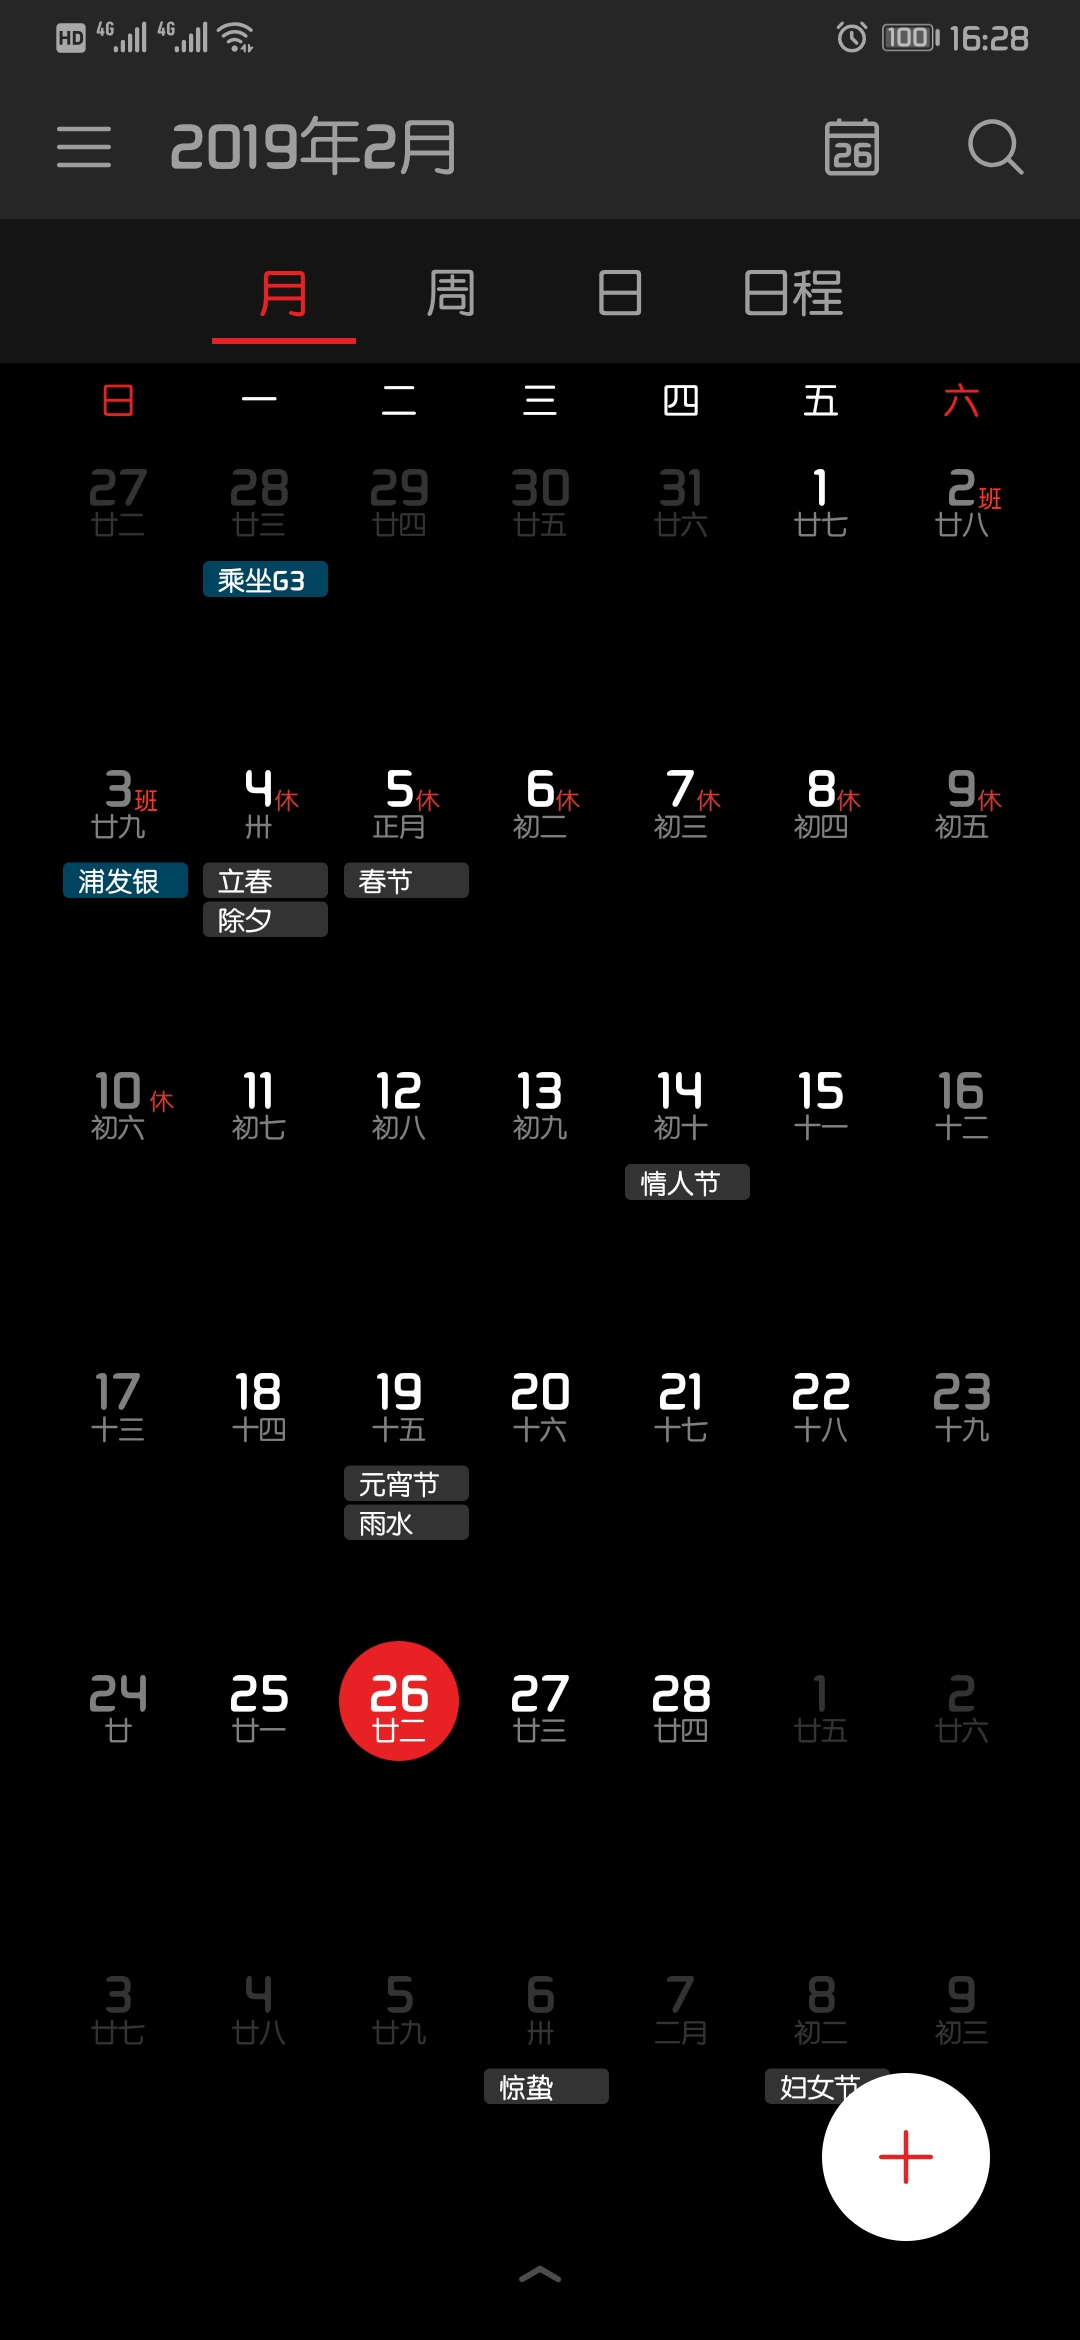 Screenshot_20190226_162853_com.android.calendar.jpg